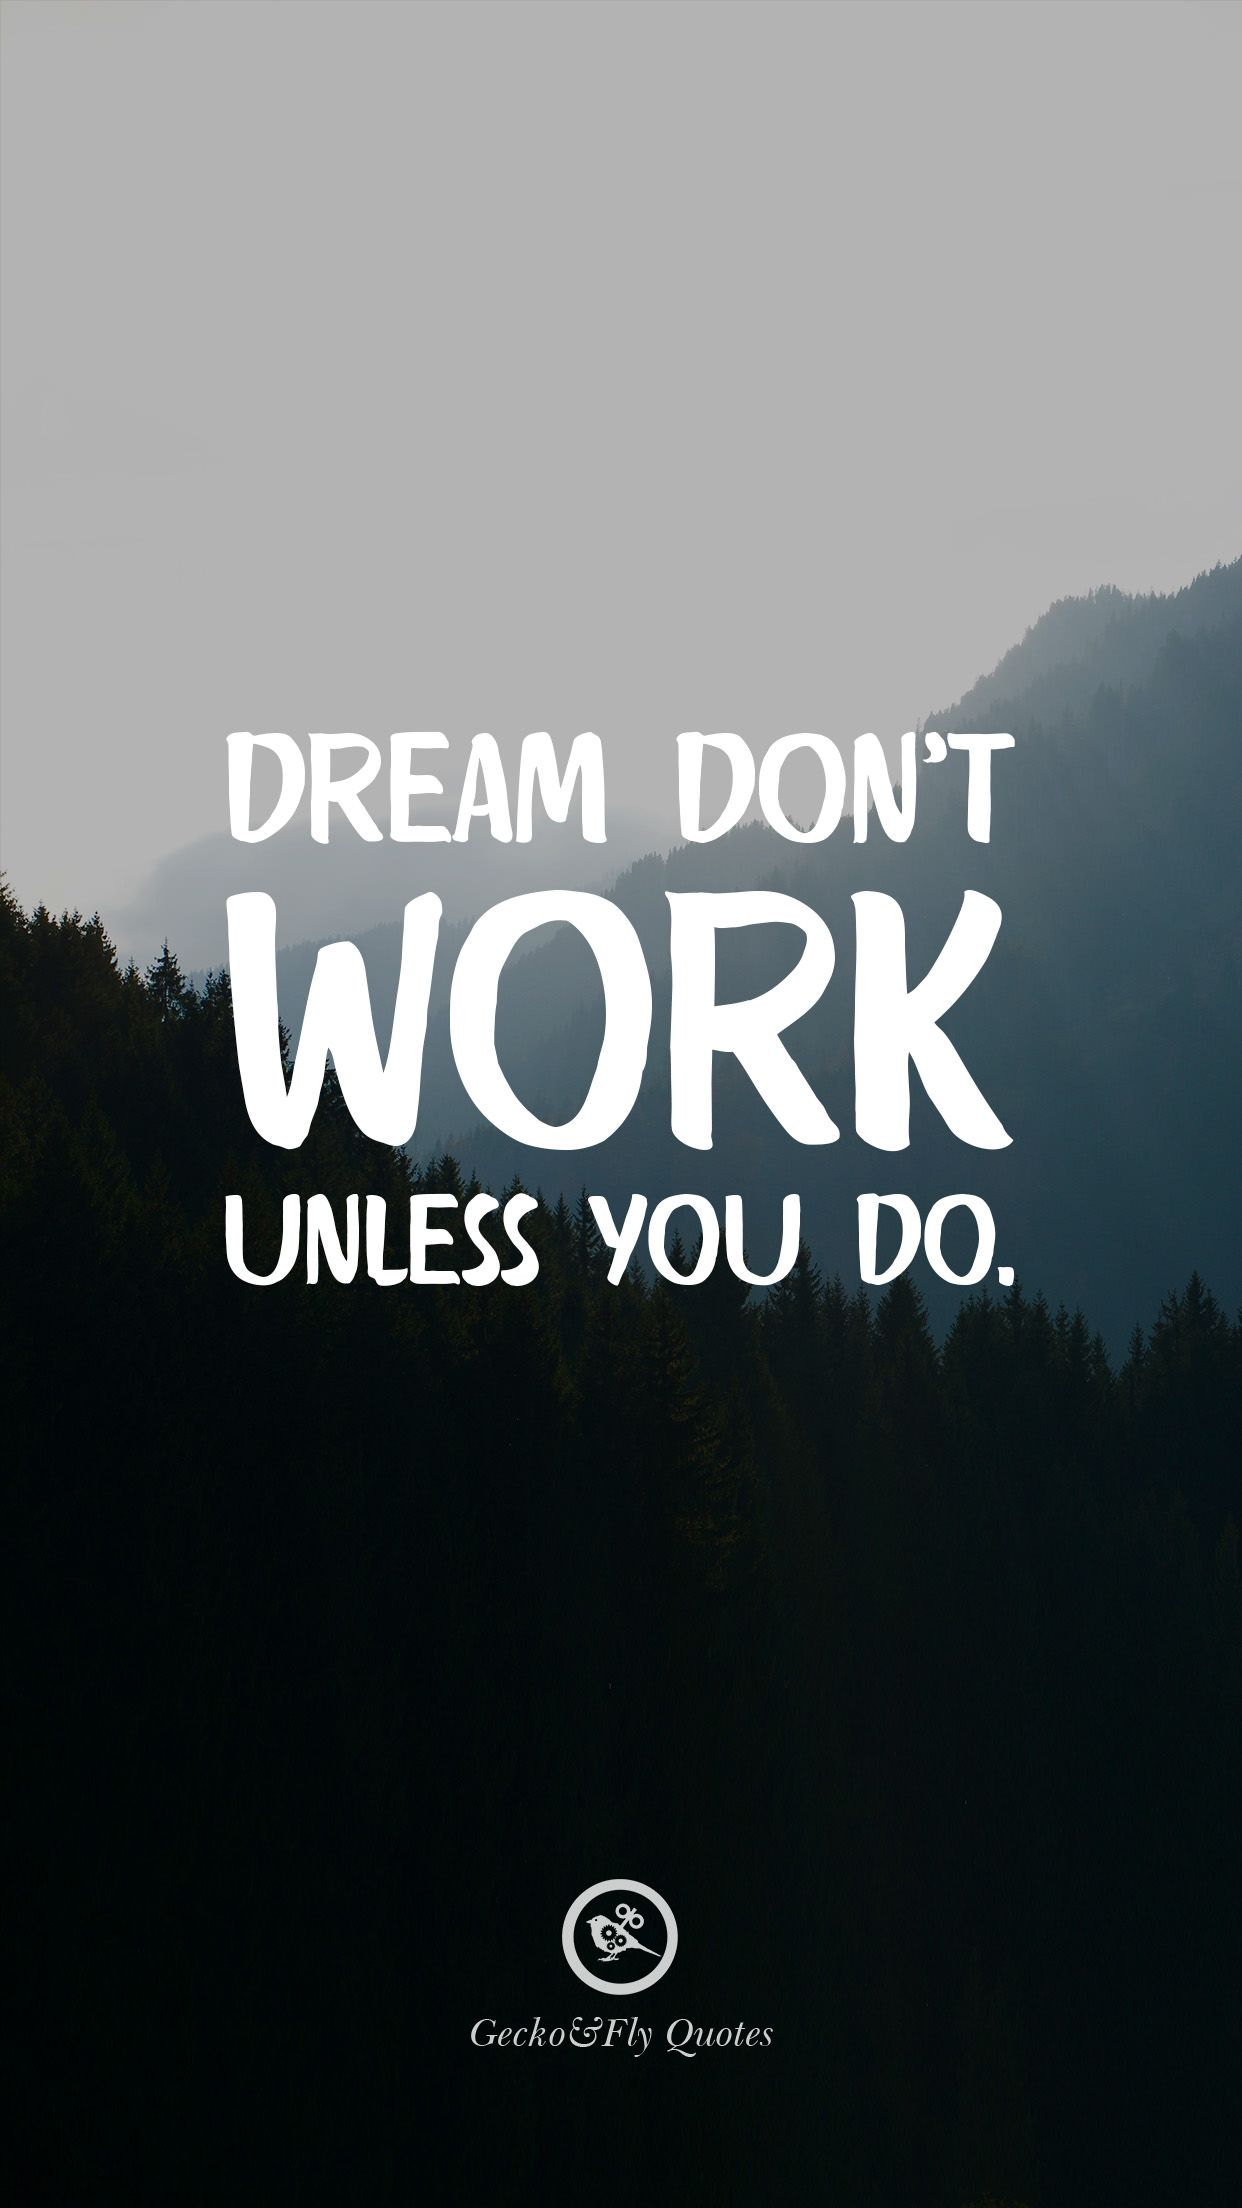 Dream Don T Work Unless You Do Inspirational Quotes Wallpapers Iphone Wallpaper Quotes Inspirational Motivational Quotes For Students